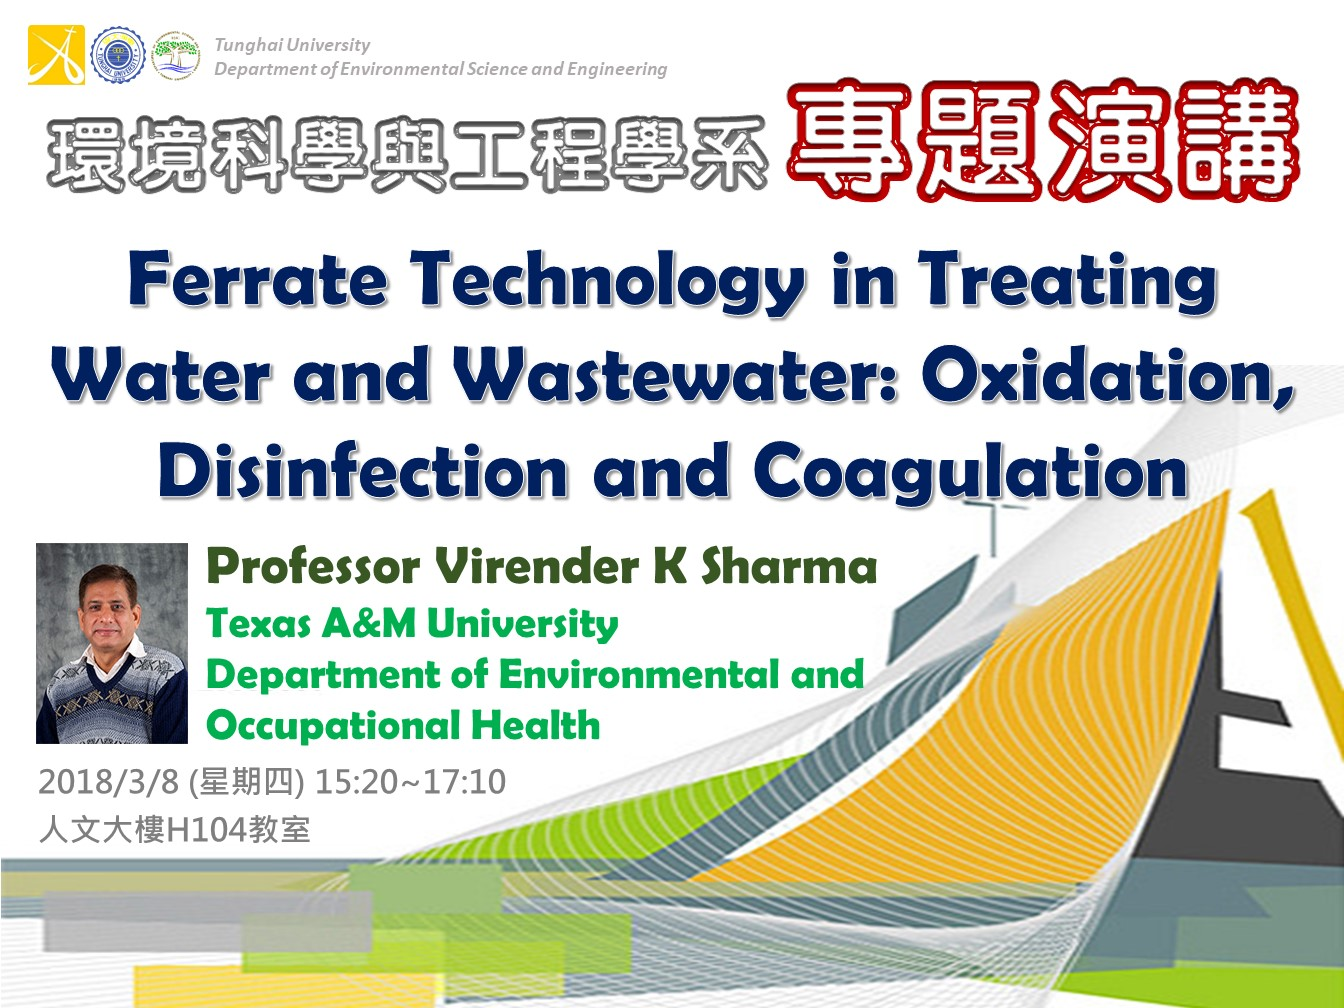 Ferrate Technology in Treating Water and Wastewater: Oxidation, Disinfection and Coagulation